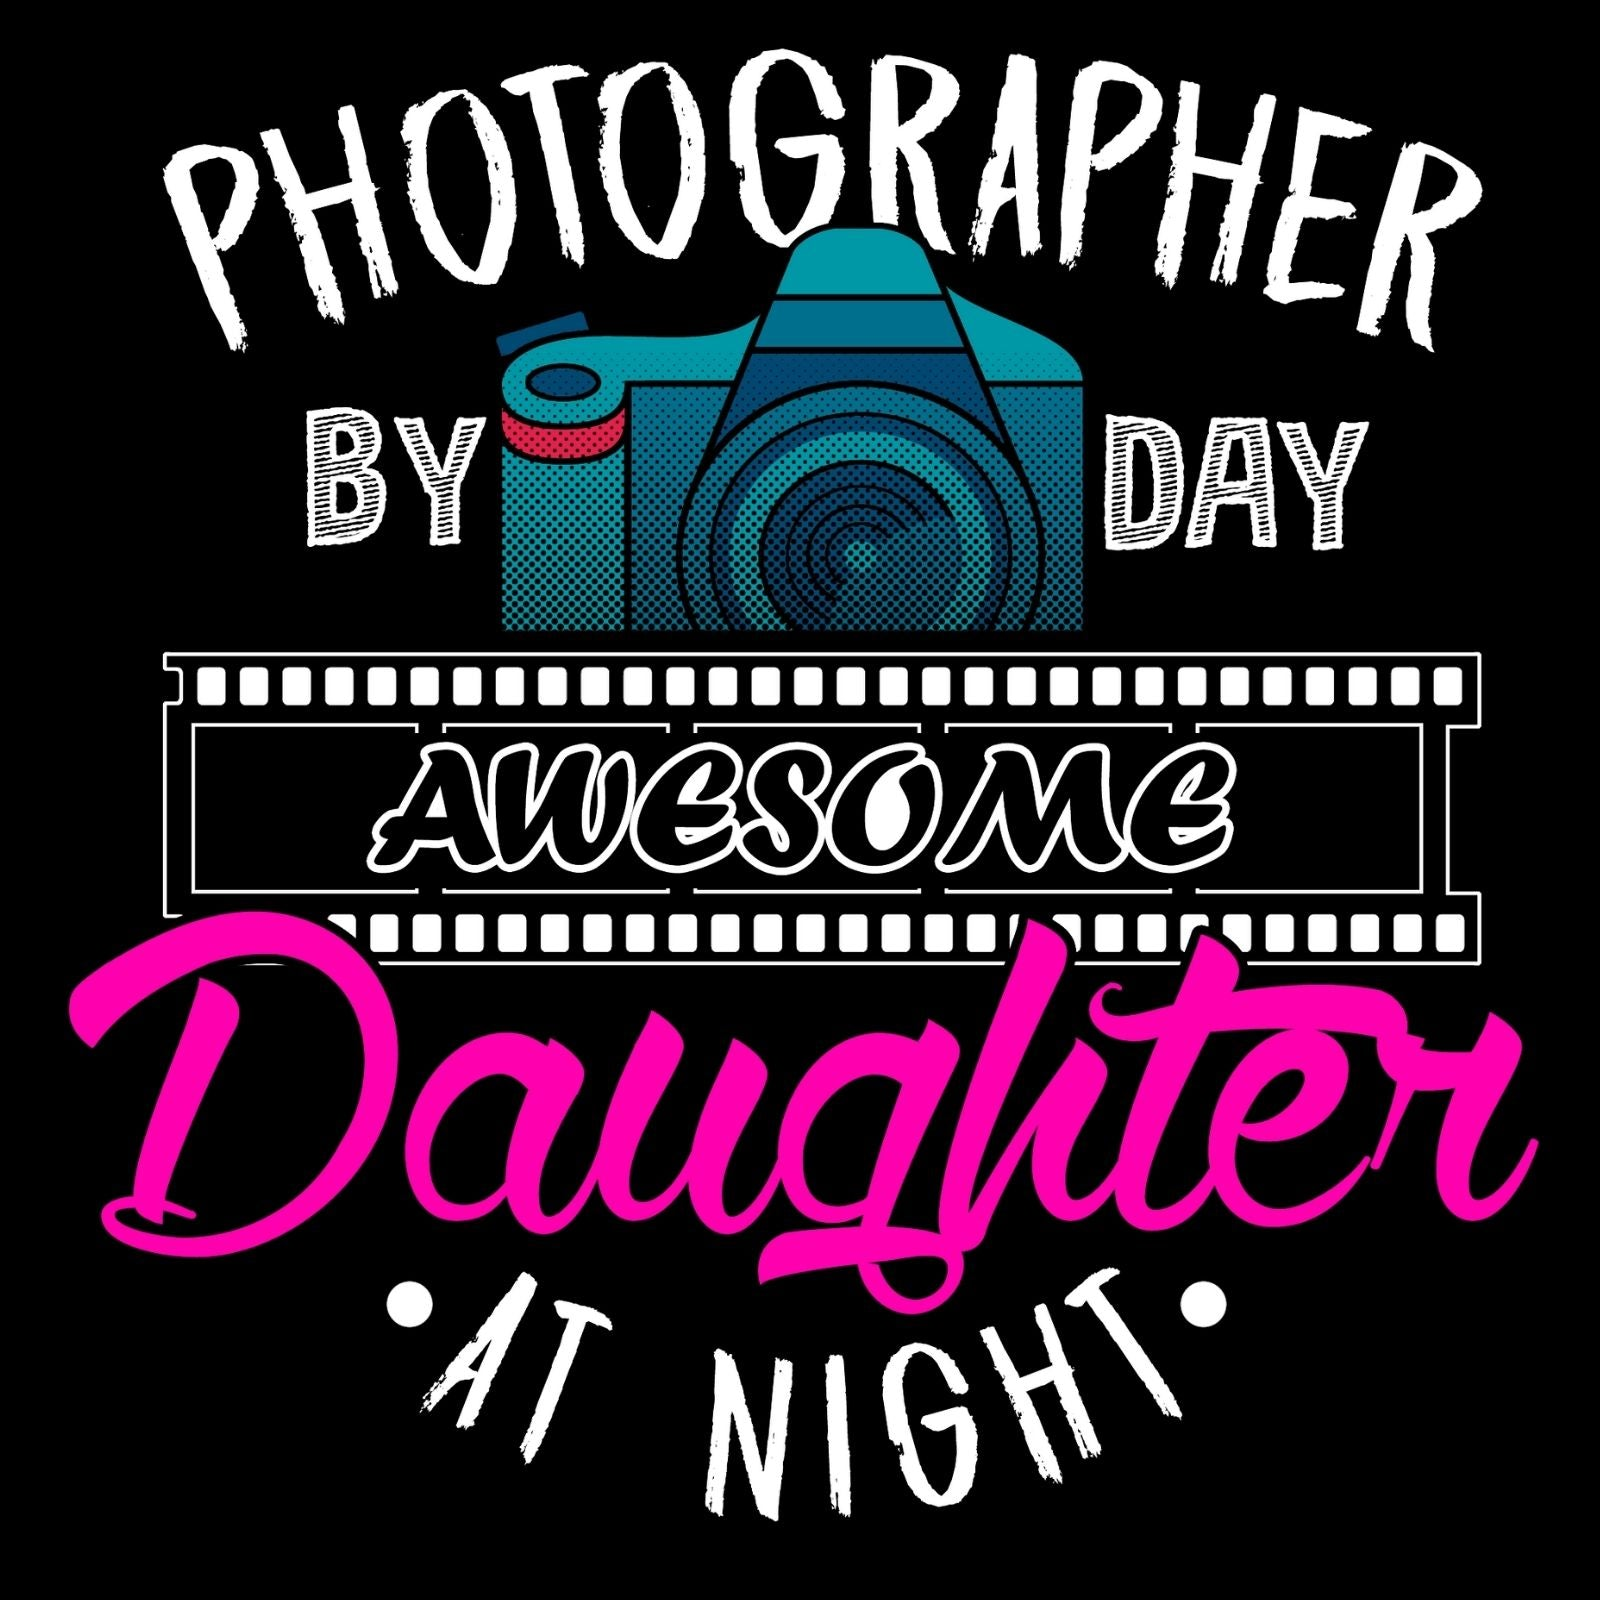 Photographer by Day Awesome Daughter At Night - Bastard Graphics